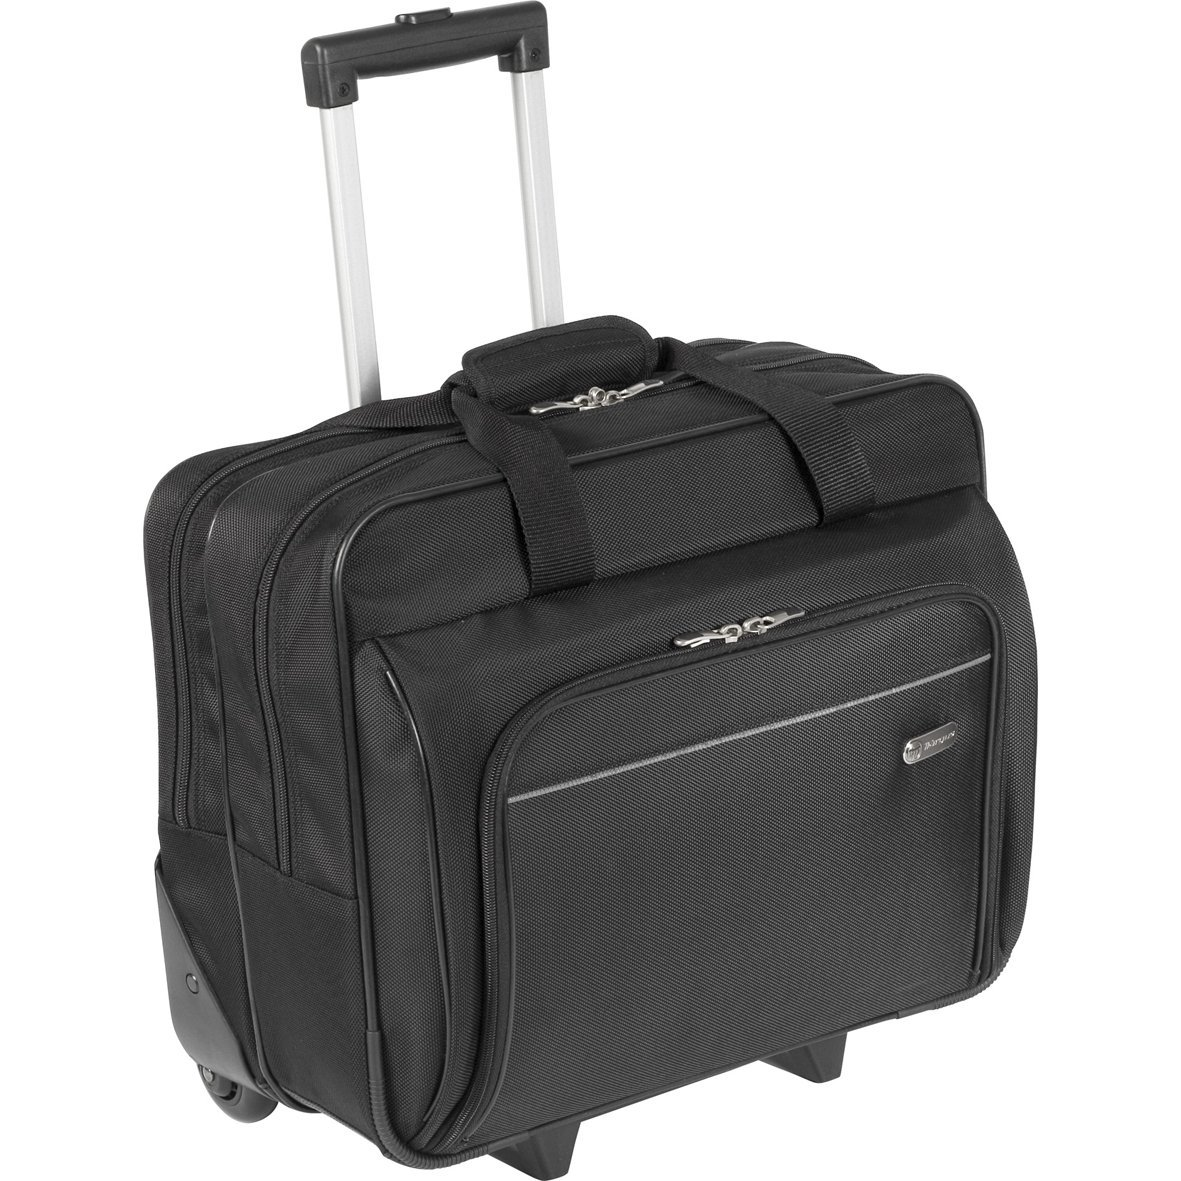 Business Travel Luggage Options - Luggage News In The UK